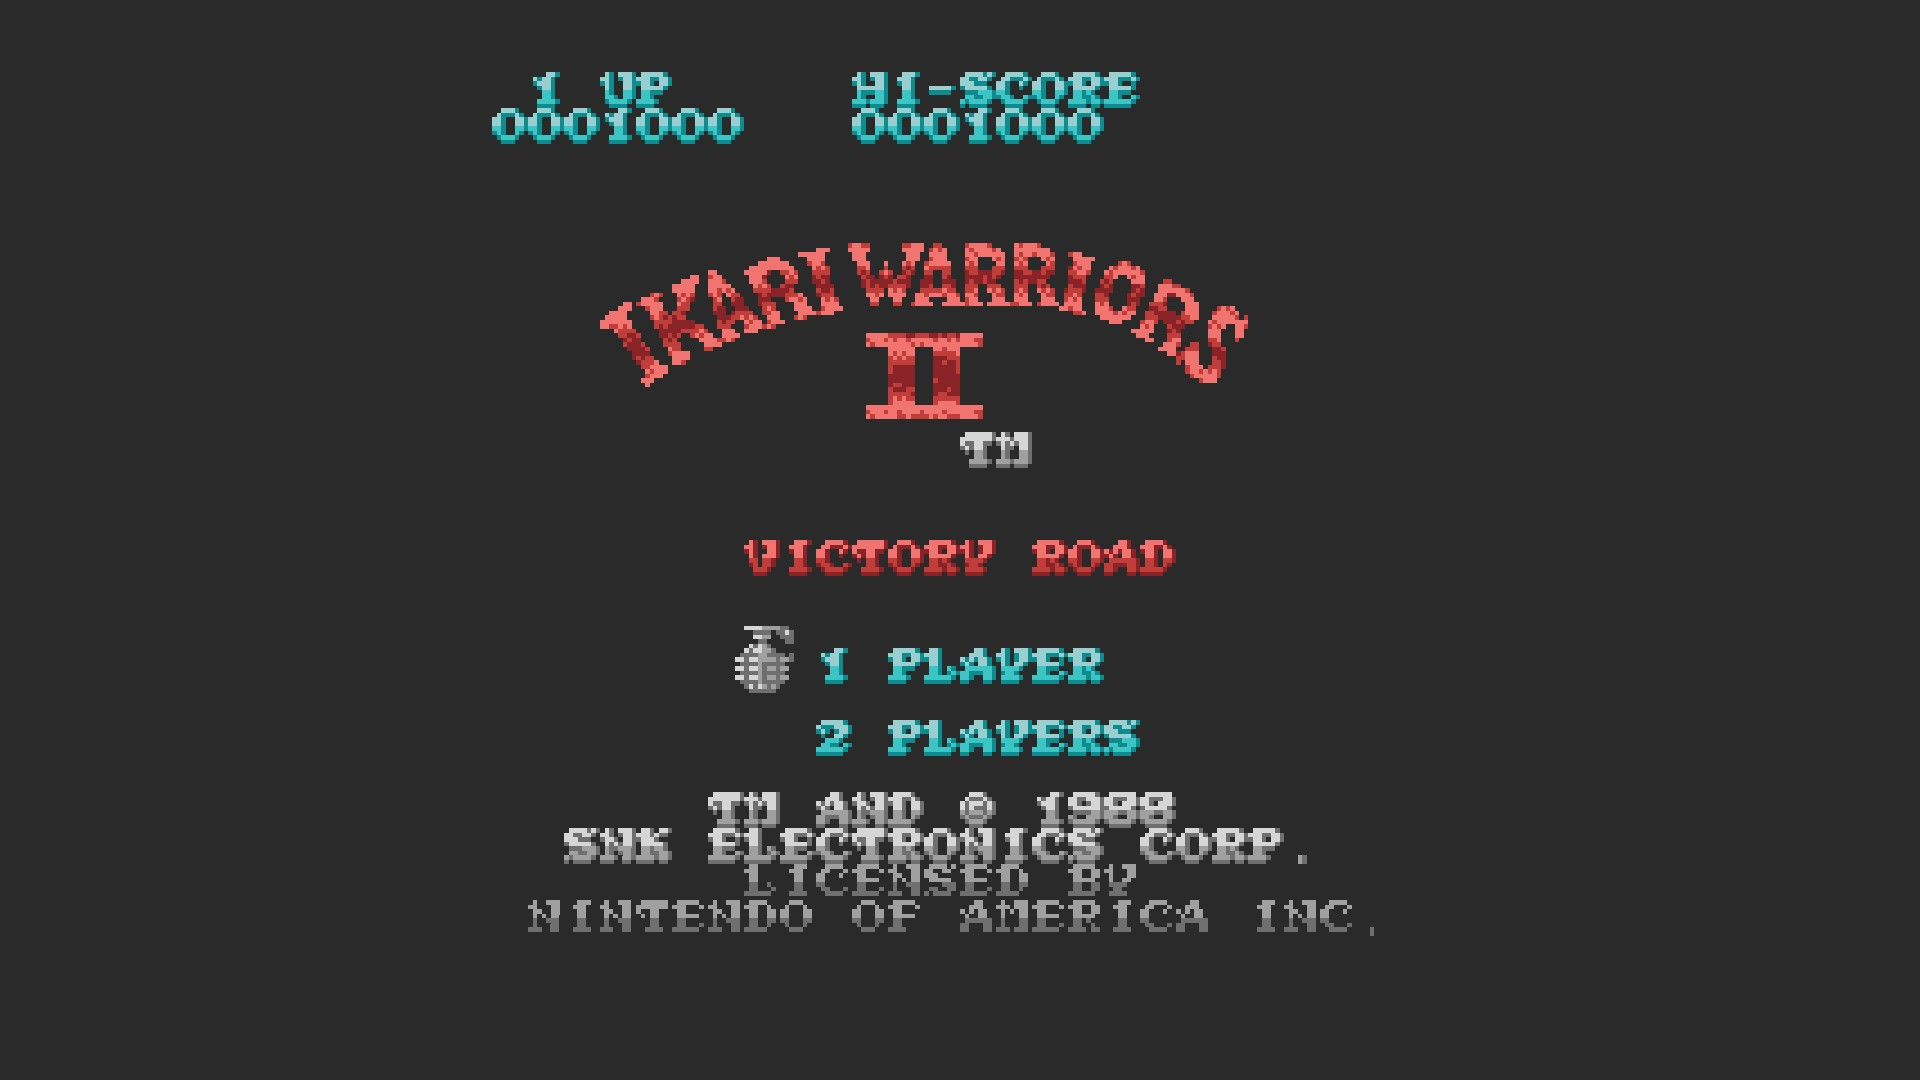 Ikari Warriors II: Victory Road 1,000 points